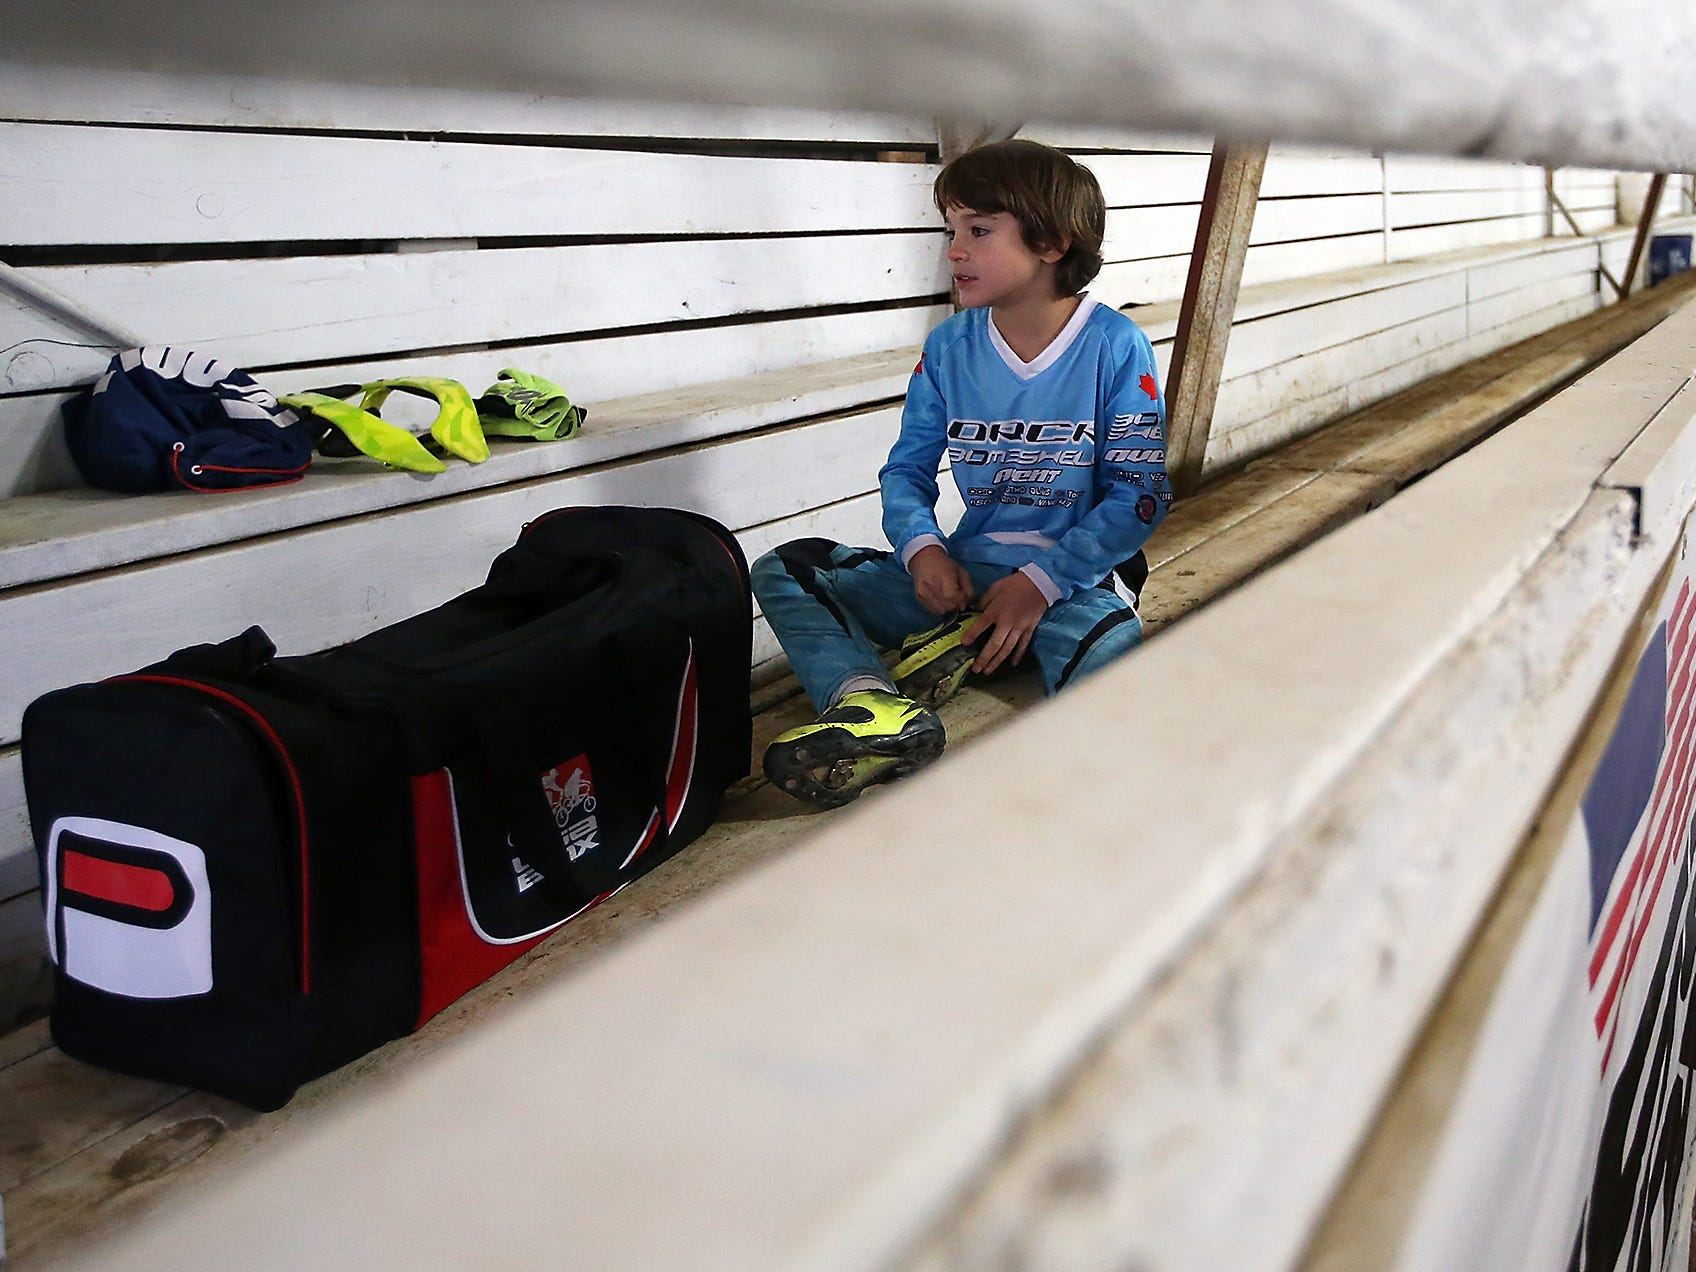 Wyatt Christensen, 6, of Kingston, puts on his shoes as he prepares to ride the track at Peninsula Indoor BMX in Port Orchard on Saturday, December 8, 2018.